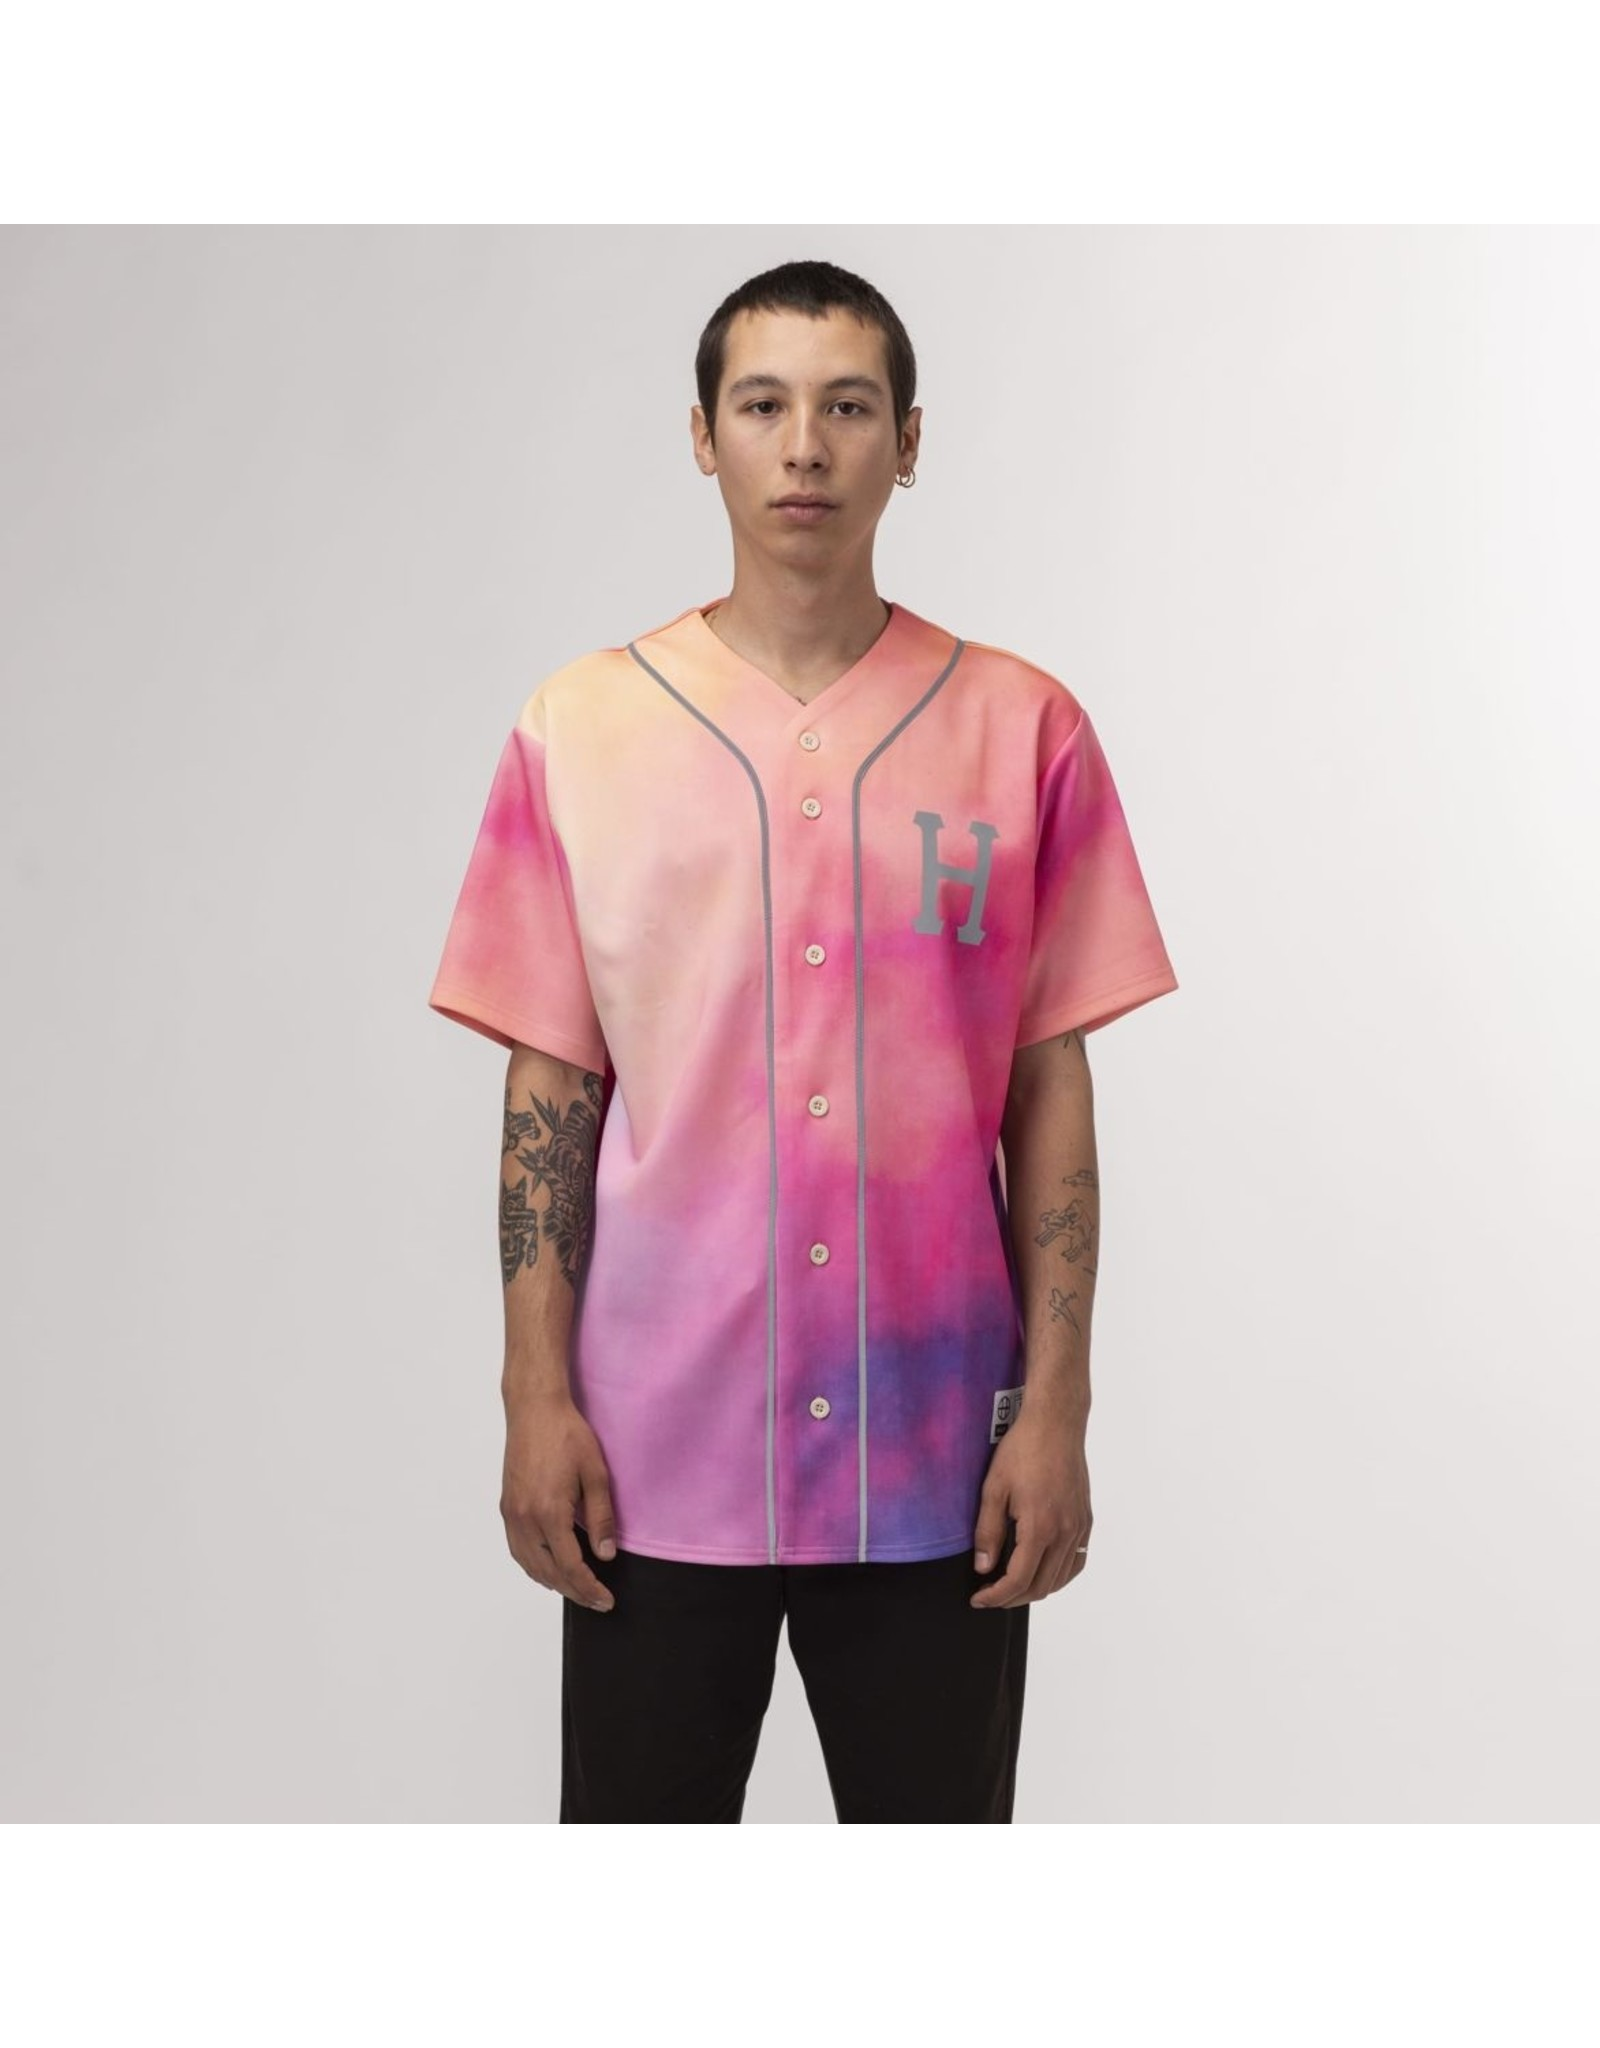 HUF HUF - CLASSIC REFLECTIVE  JERSEY - CORAL - L